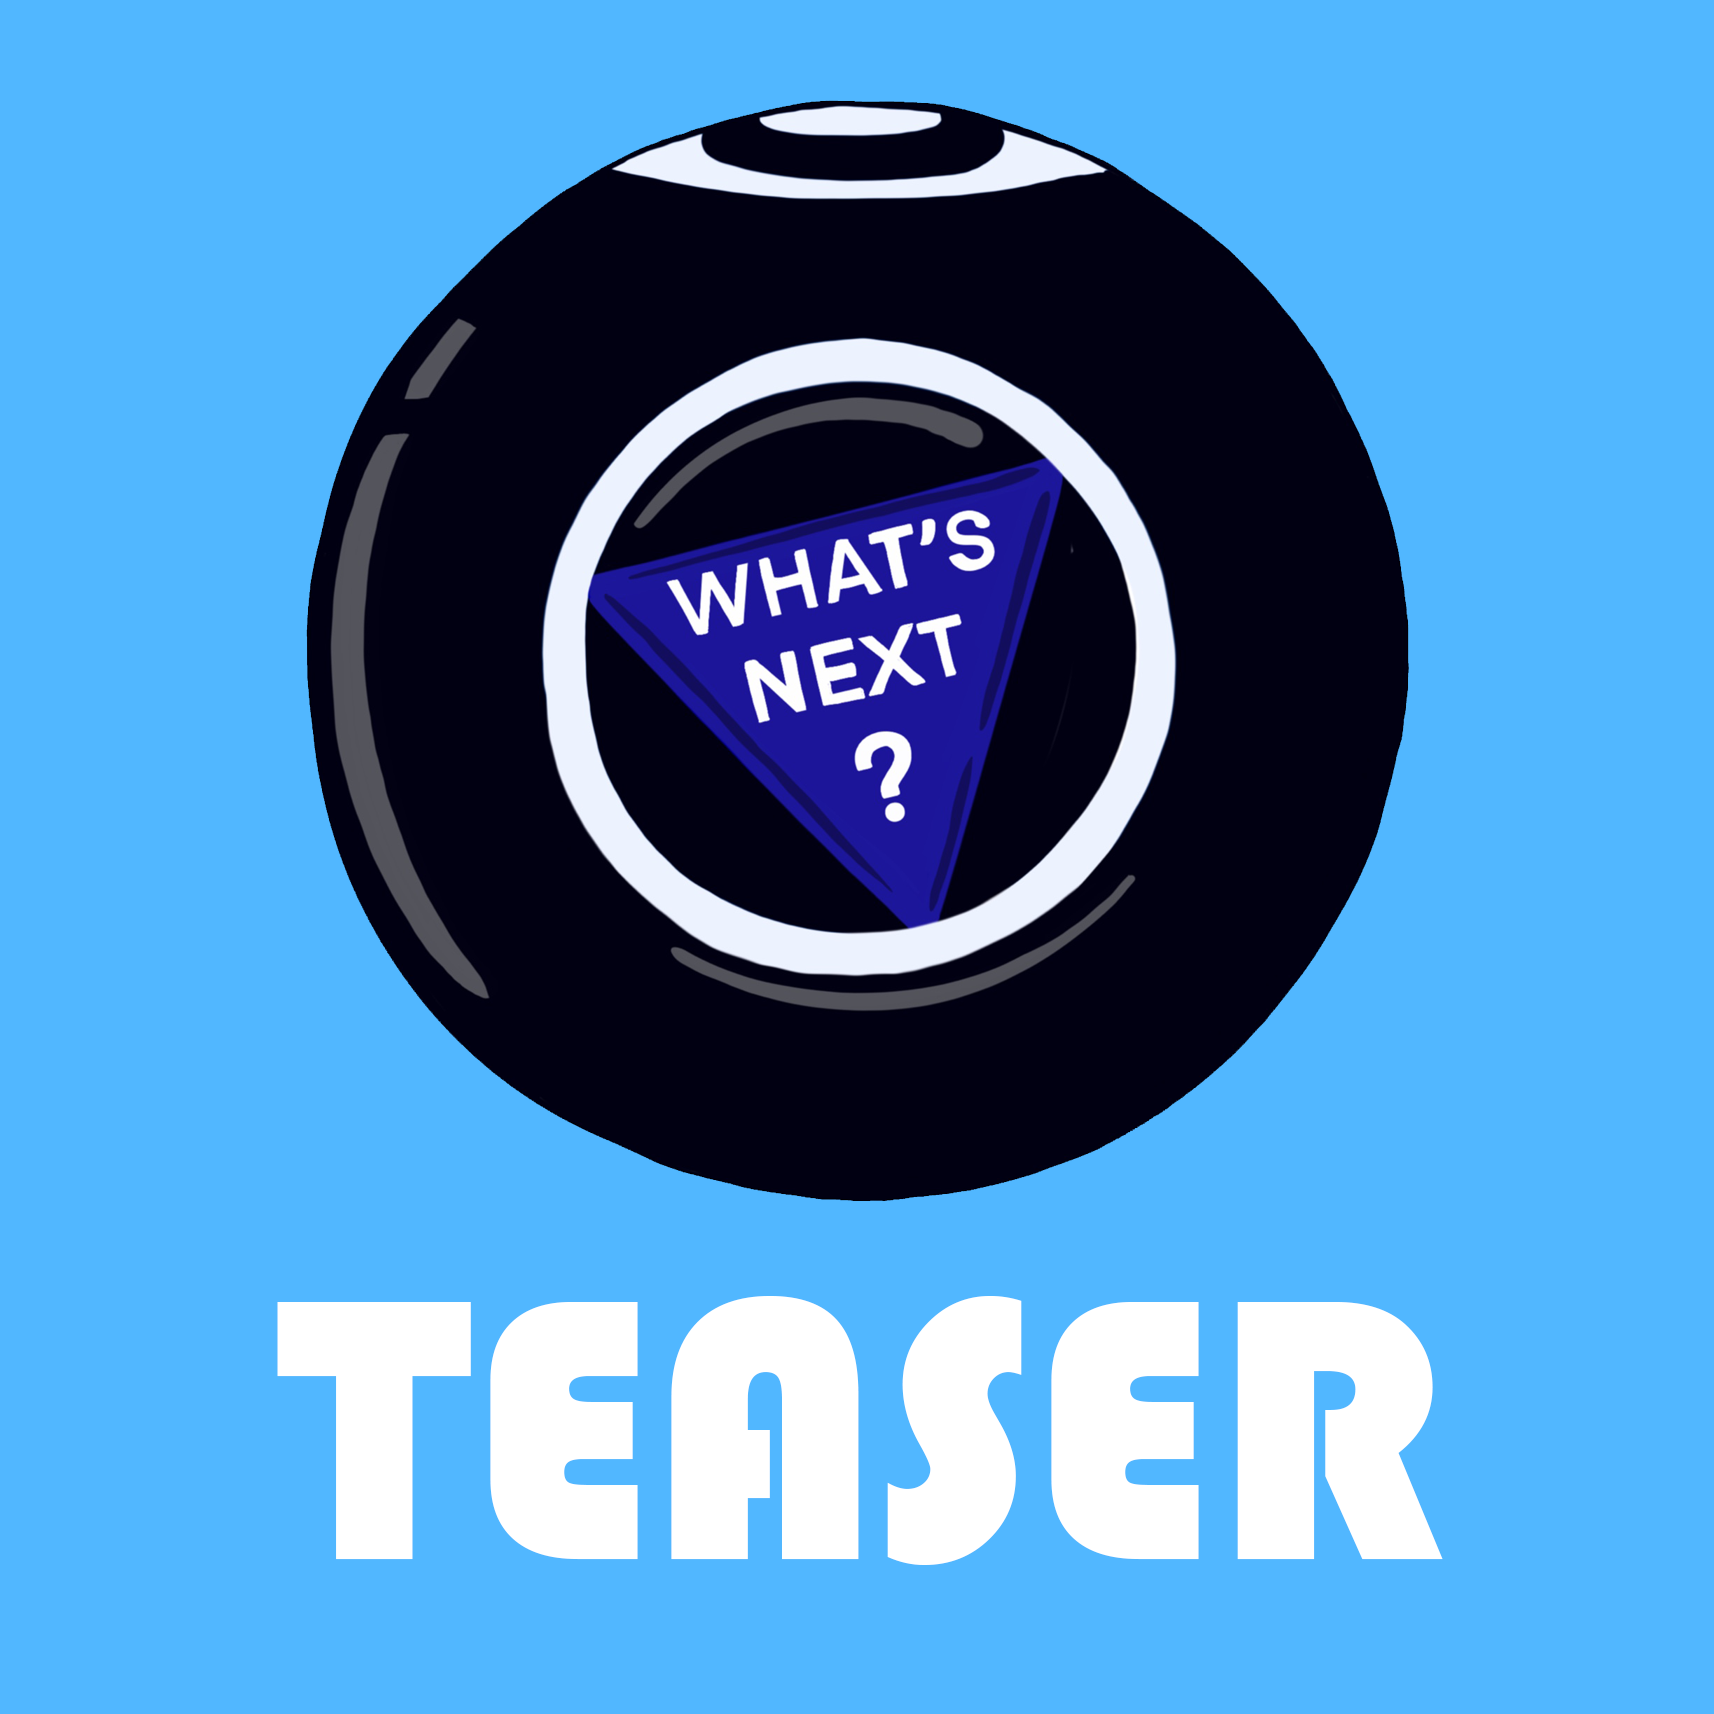 Artwork for podcast What's Next?